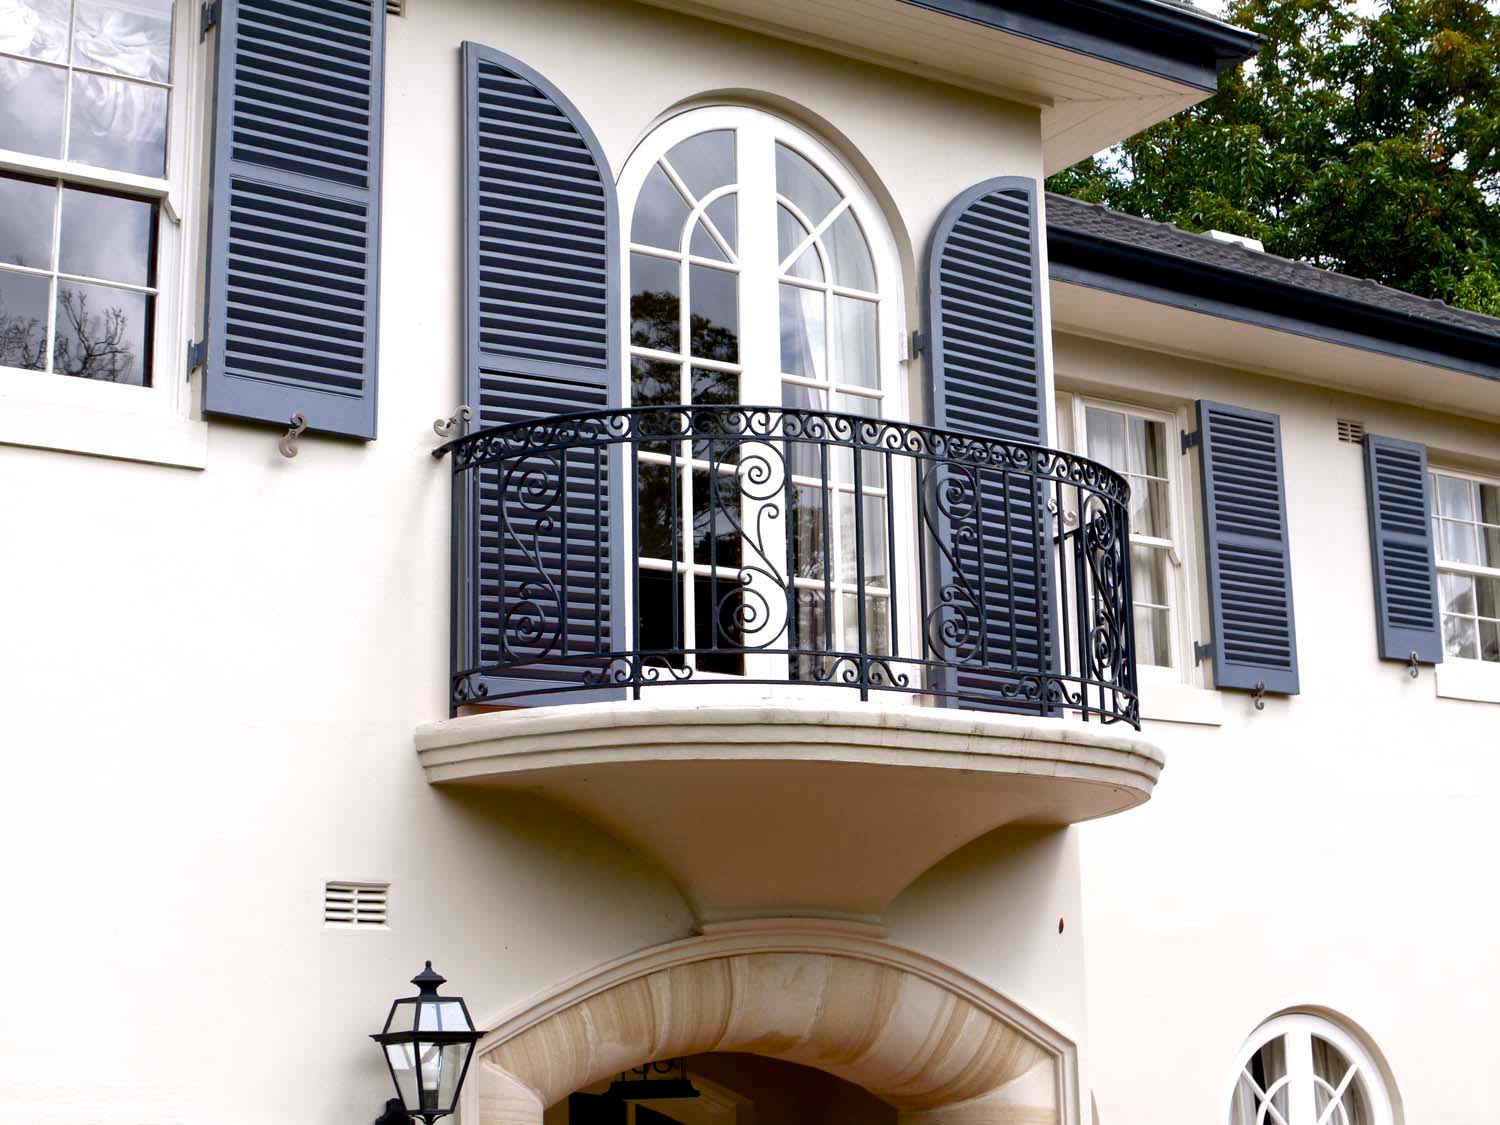 8 French doors on french home with outdoor lantern and custom design features